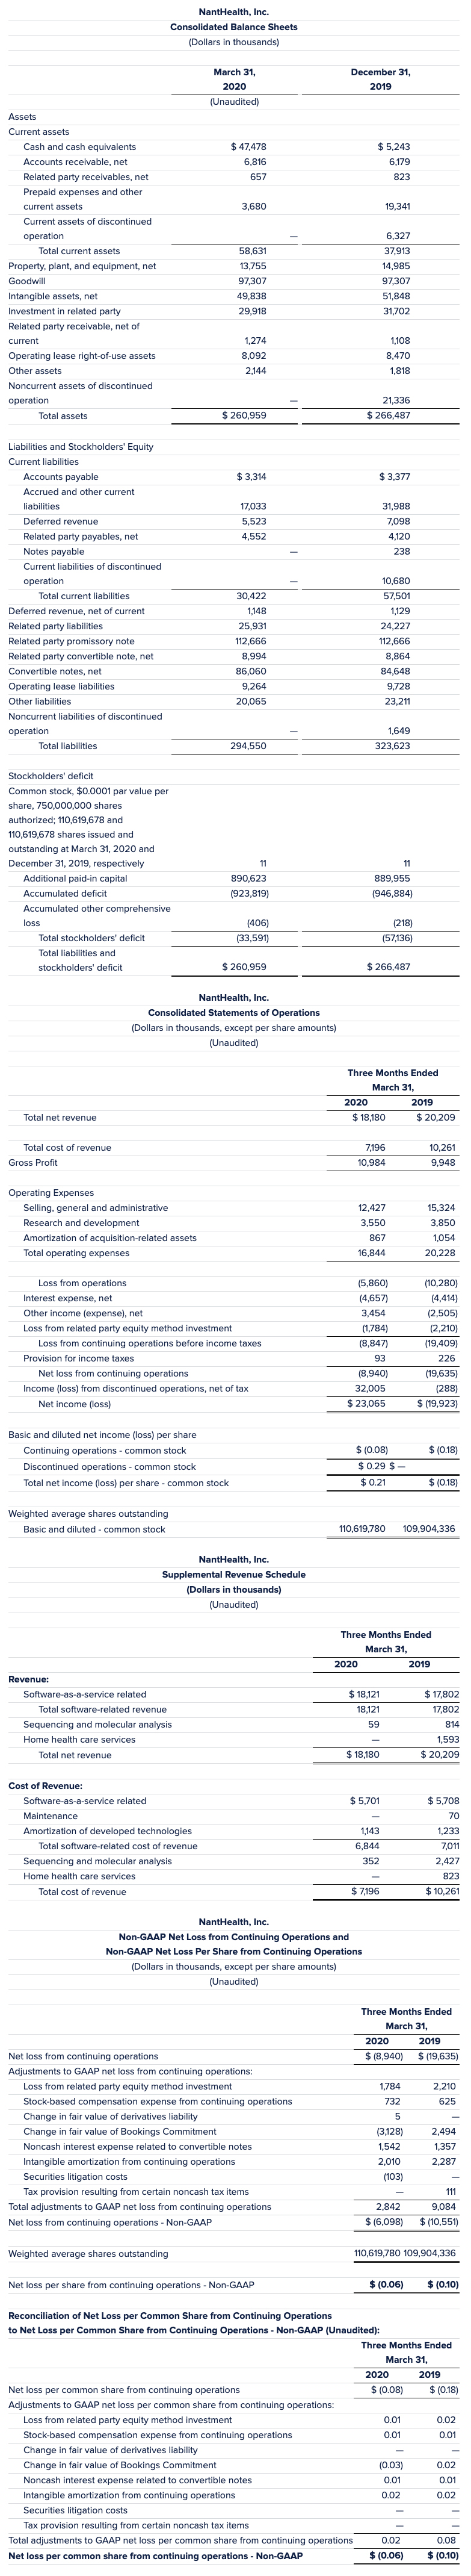 2020 First Quarter Financial Tables